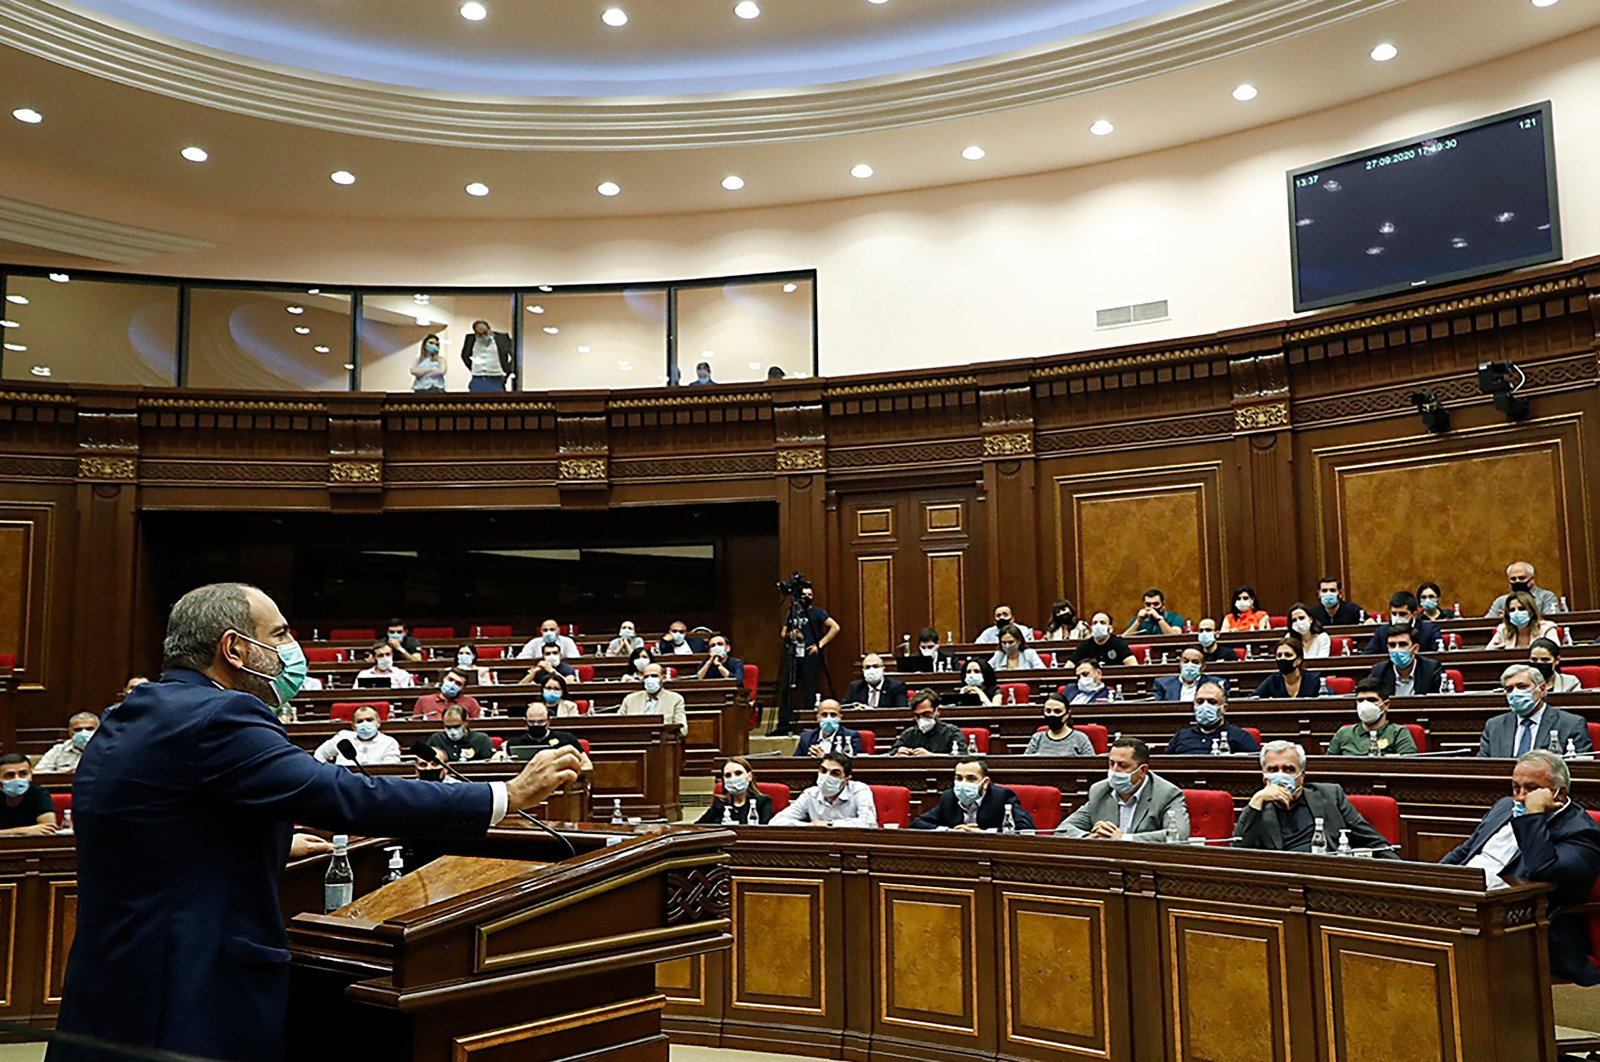 Armenian Prime Minister Nikol Pashinian gives a speech at the parliament in Yerevan, Armenia, Sept. 27, 2020. (Photo by Handout / Press service of Armenia's government / AFP)